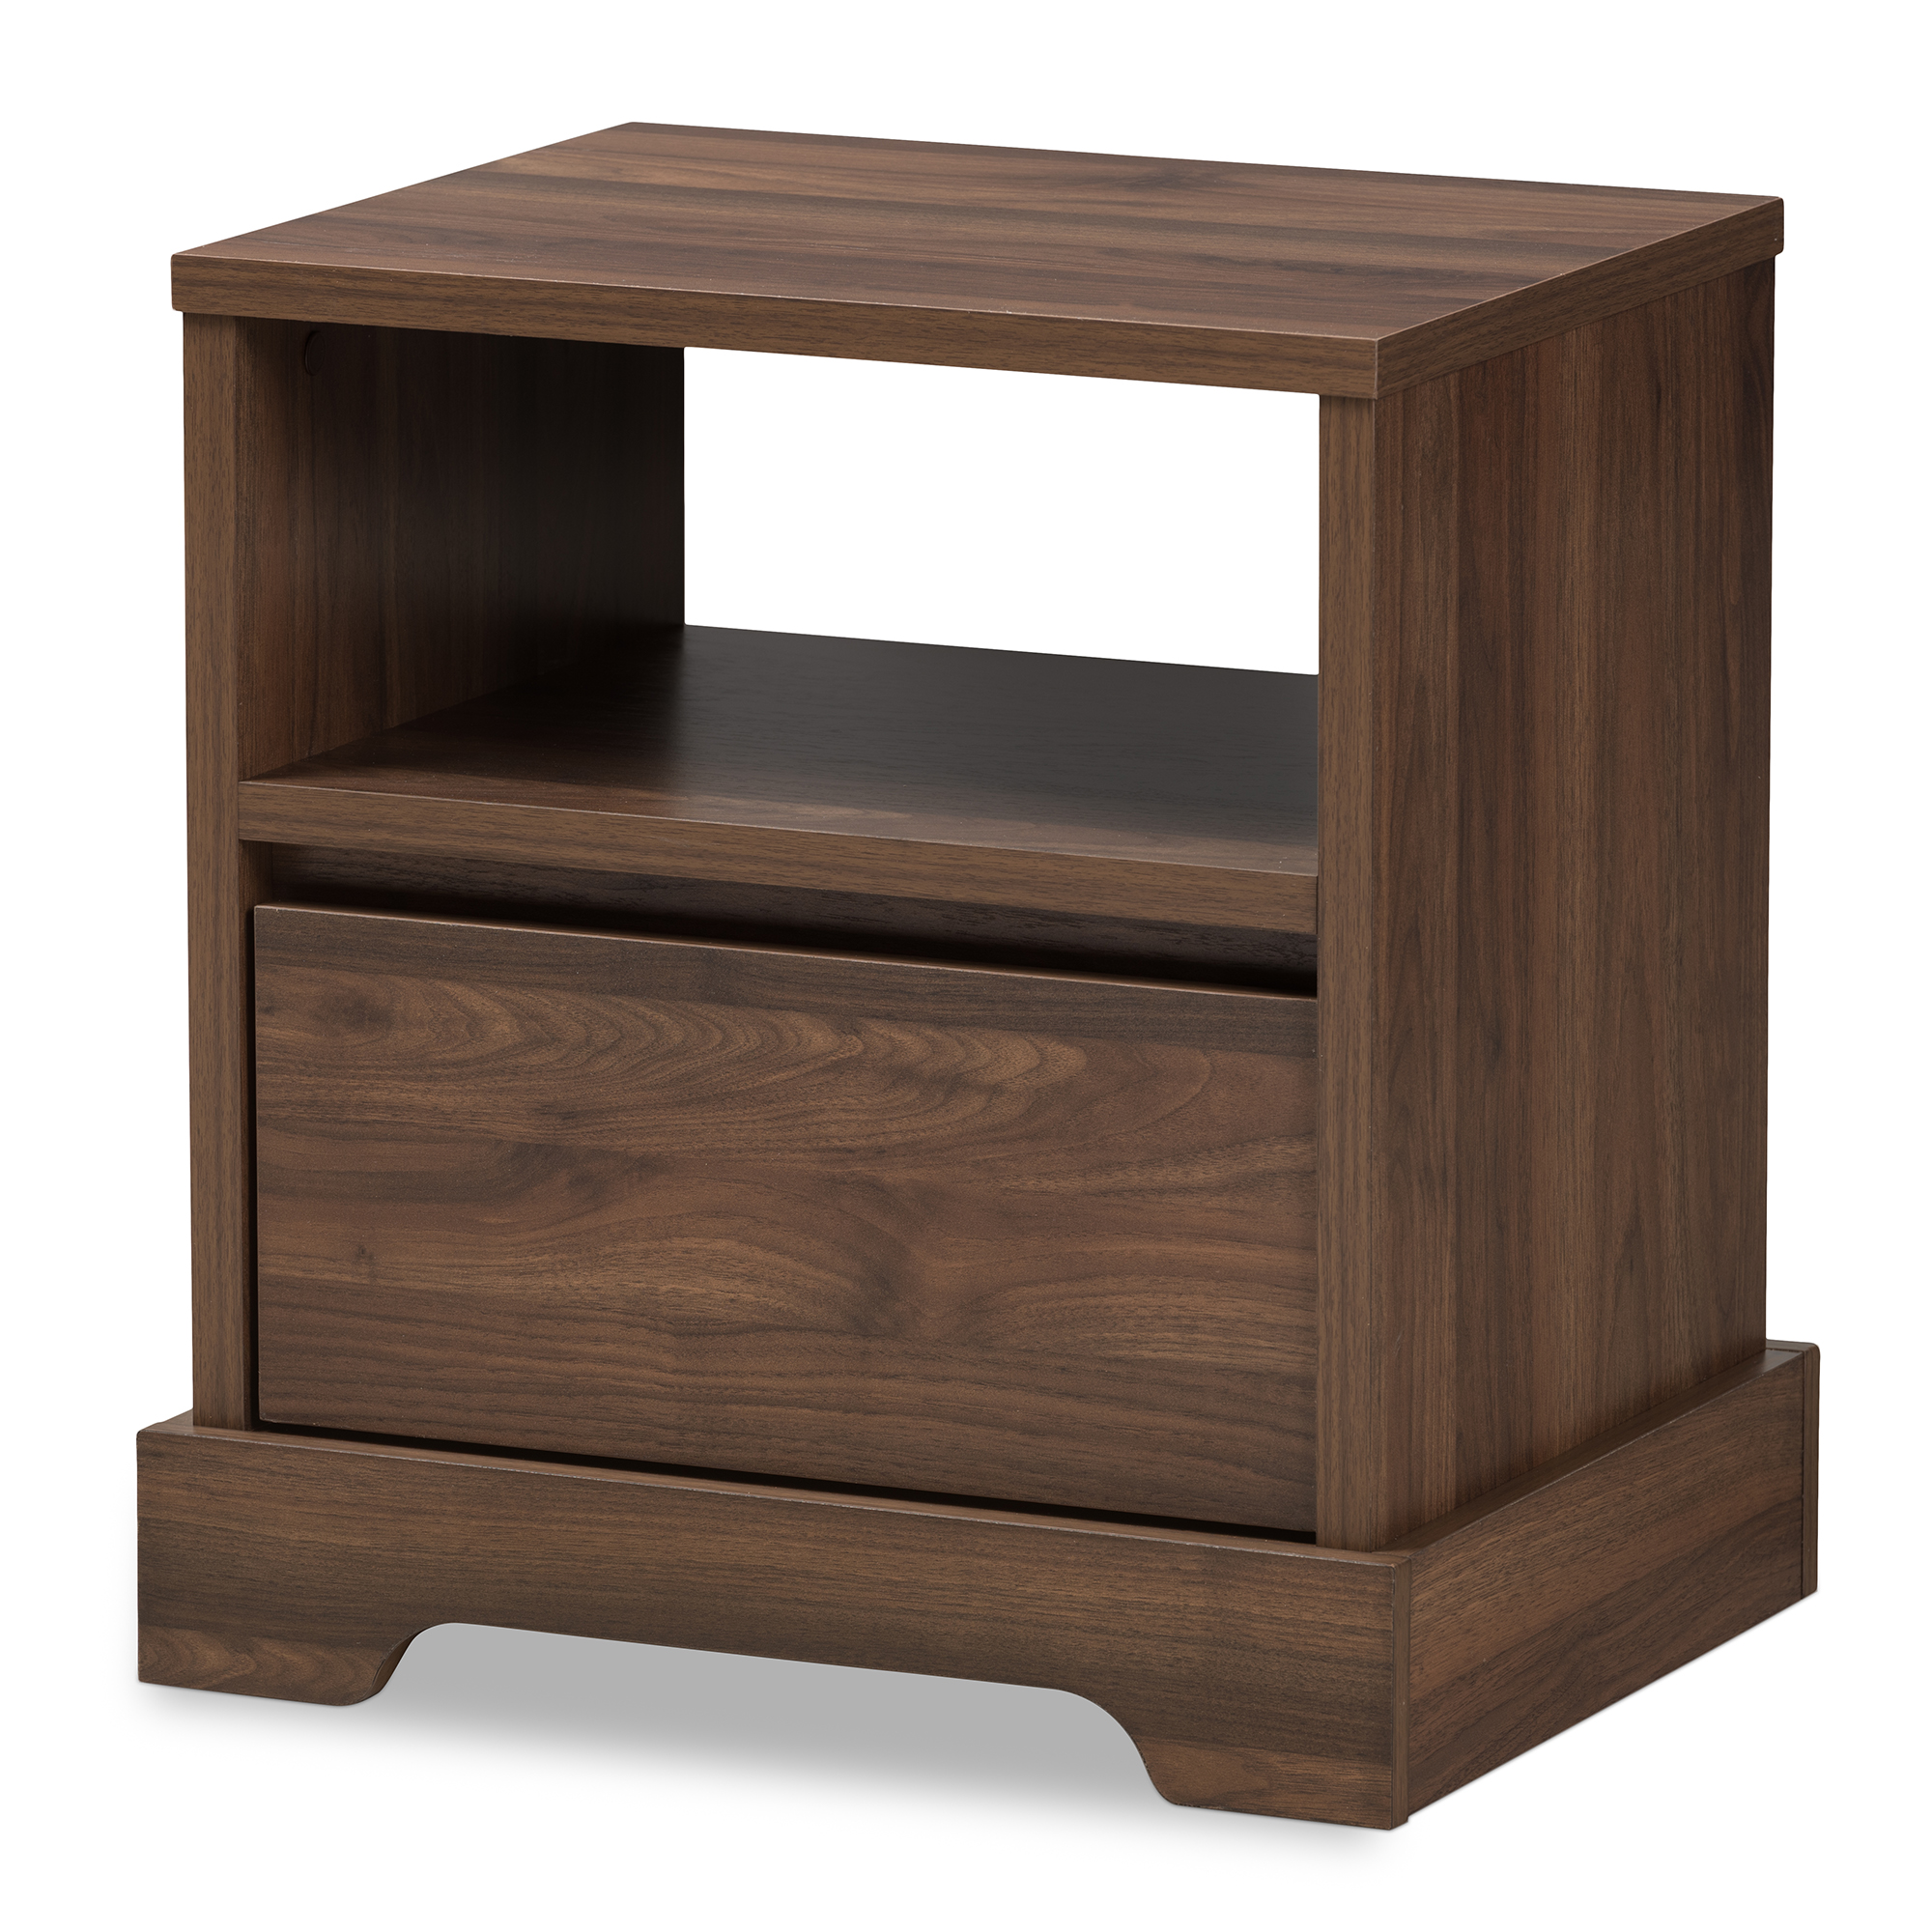 Image of Baxton Studio Burnwood Modern and Contemporary Walnut Brown Finished Wood 1-Drawer Nightstand